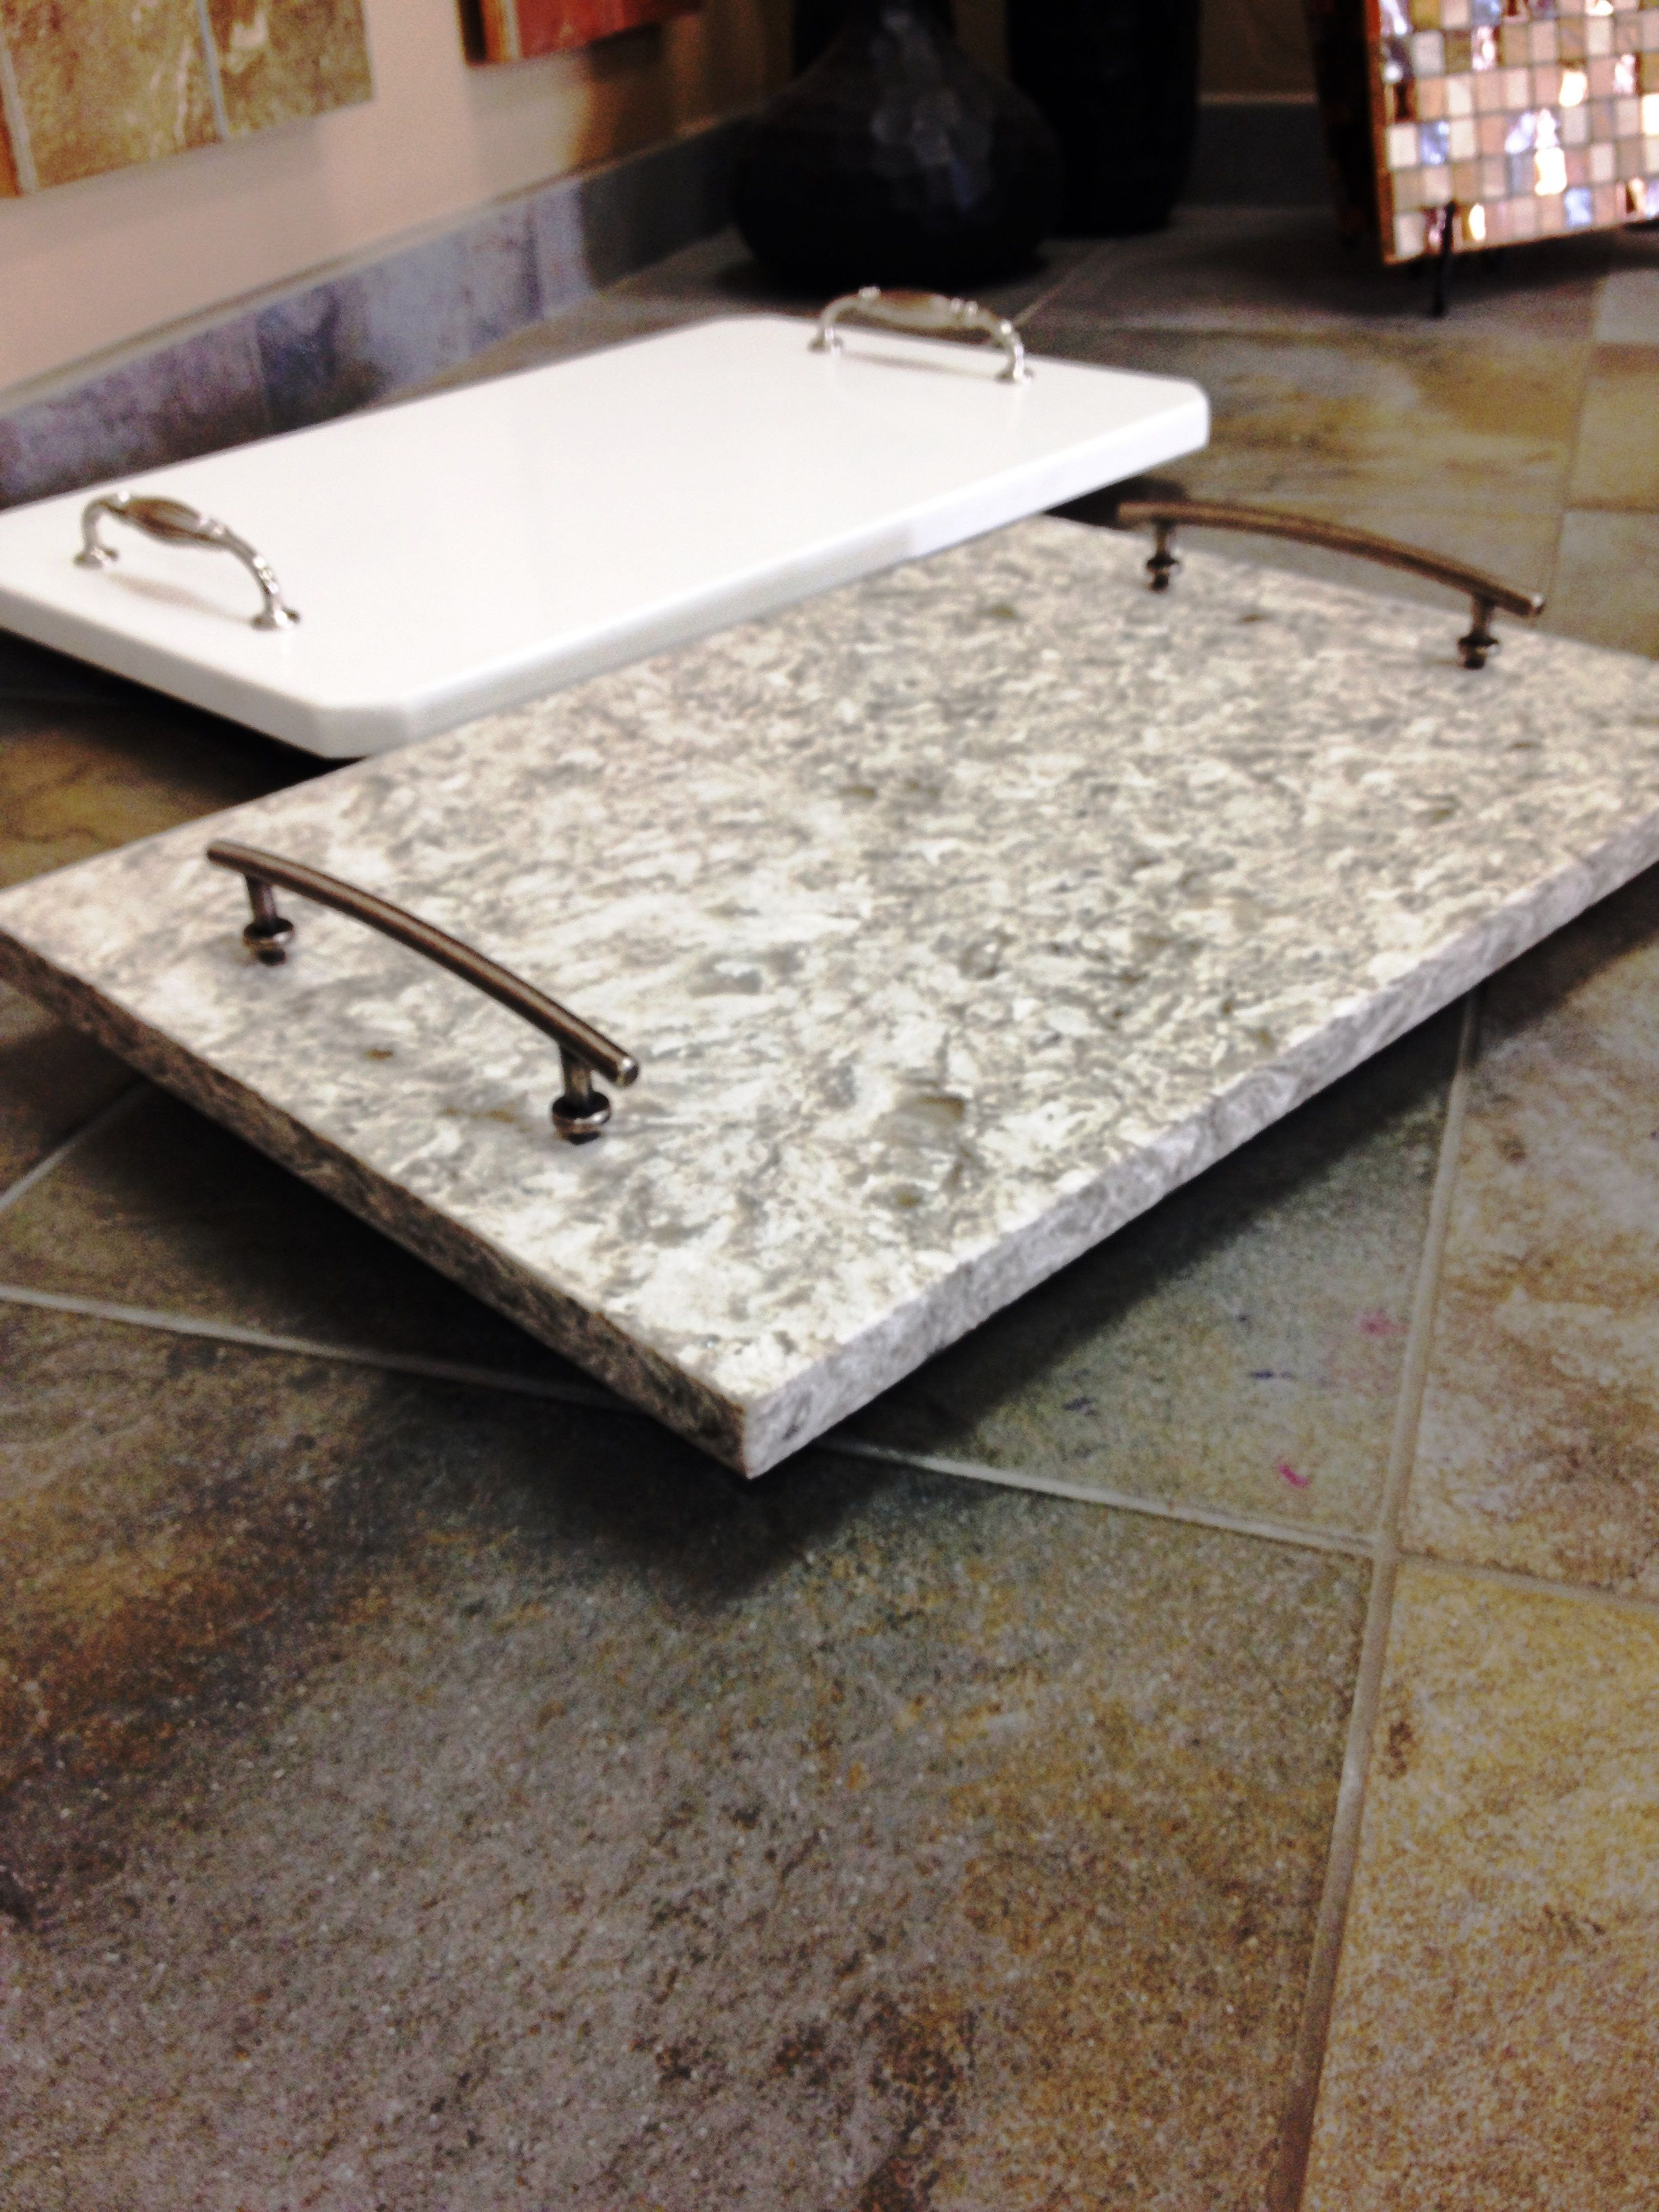 Granite Platter Has Many Uses Spice Tray Perfume Lotion On Your Vanity Elegant Wine Cheese Platter The Recycled Granite Granite Remnants Leftover Tile